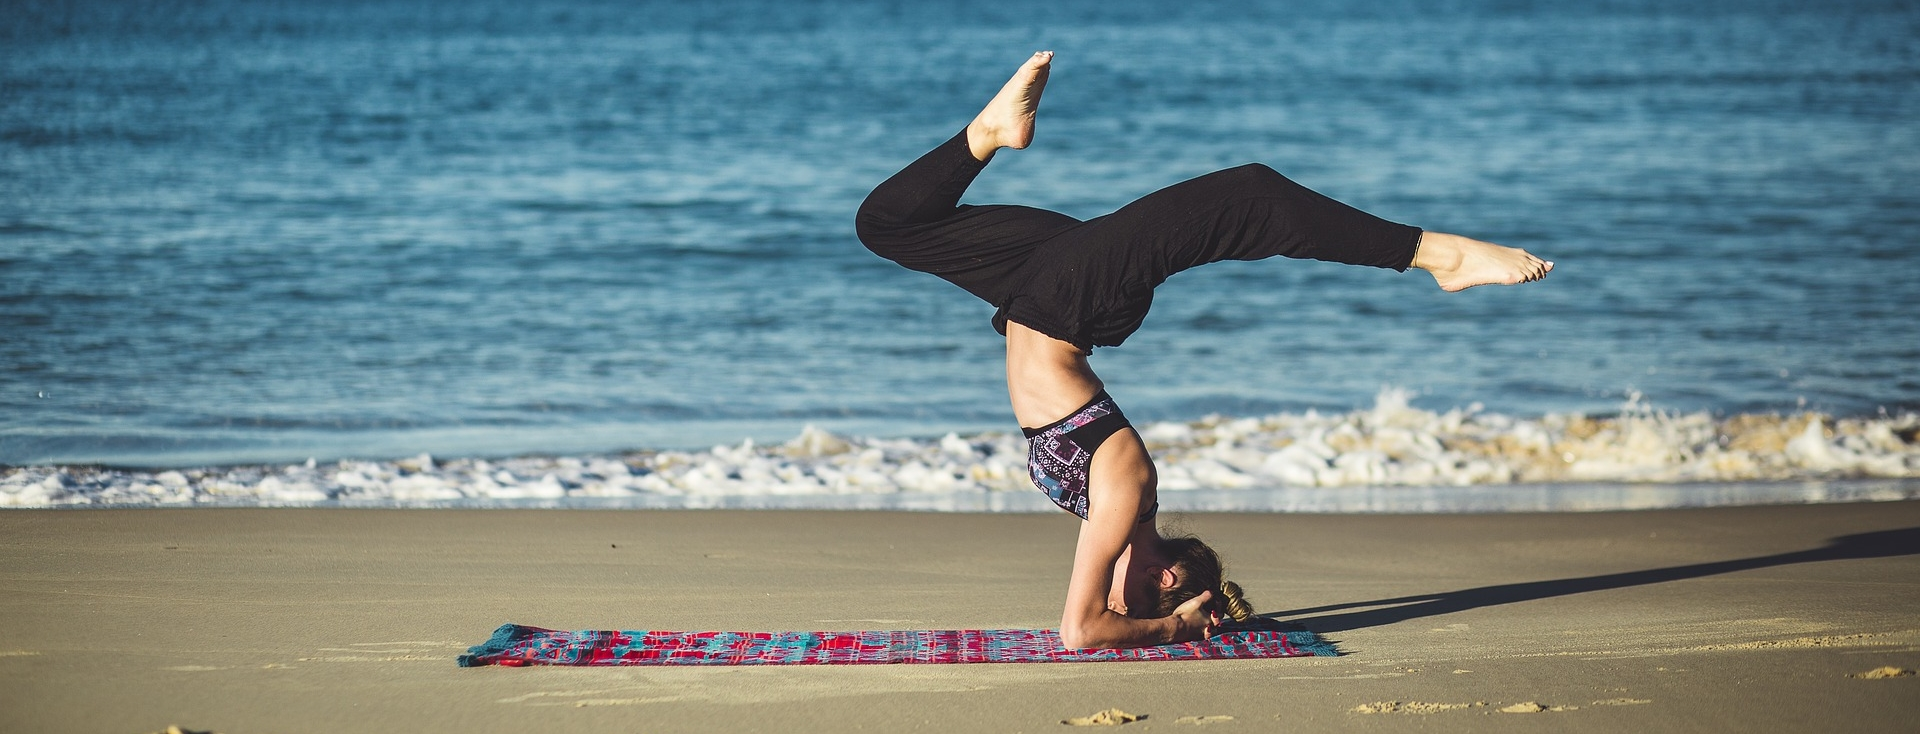 Yoga as effective as physical therapy for low back pain